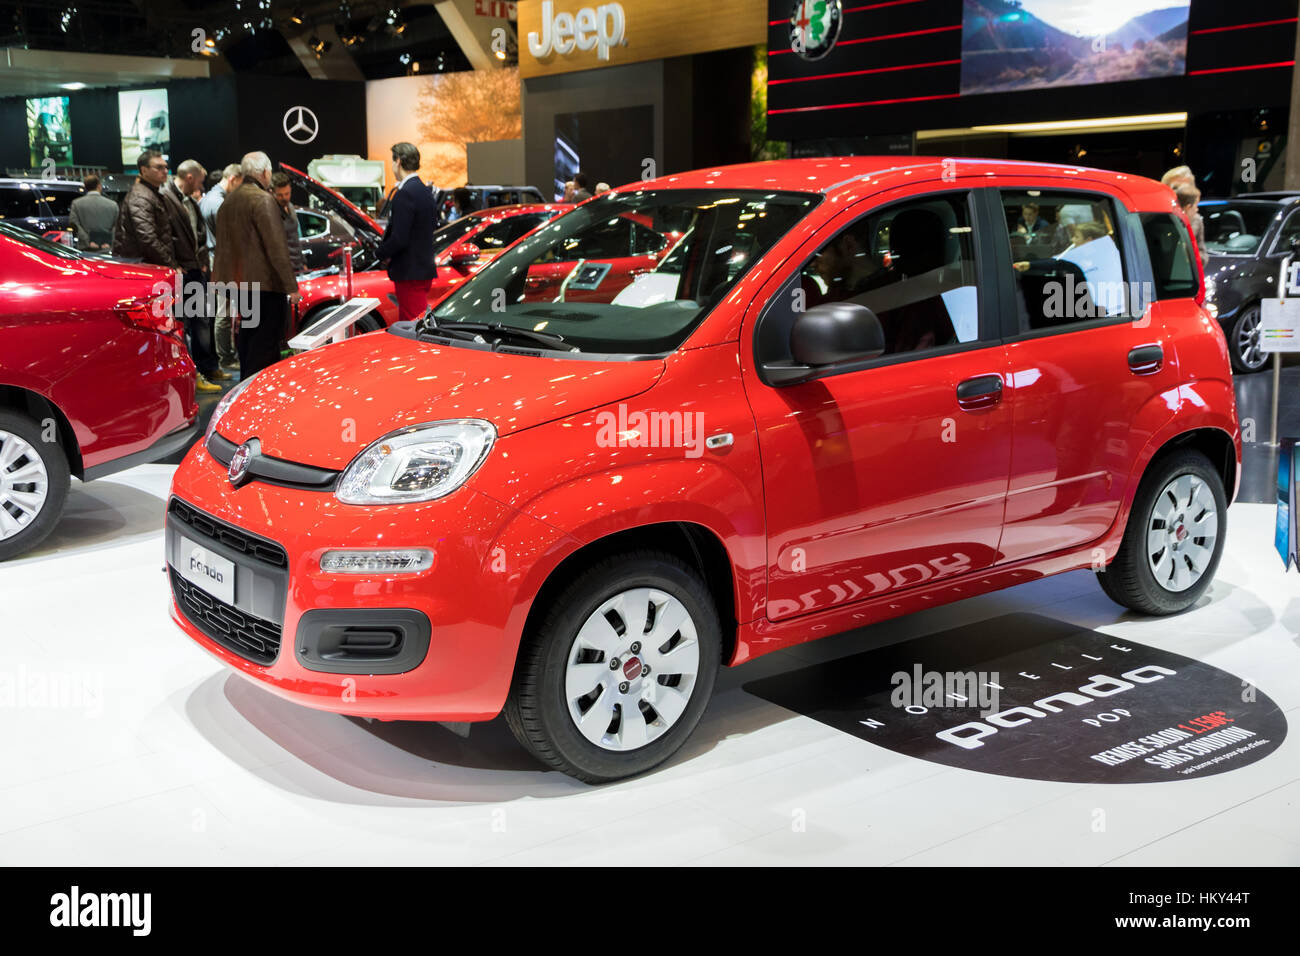 brussels jan 19 2017 new fiat panda pop on display at the motor stock photo royalty free. Black Bedroom Furniture Sets. Home Design Ideas